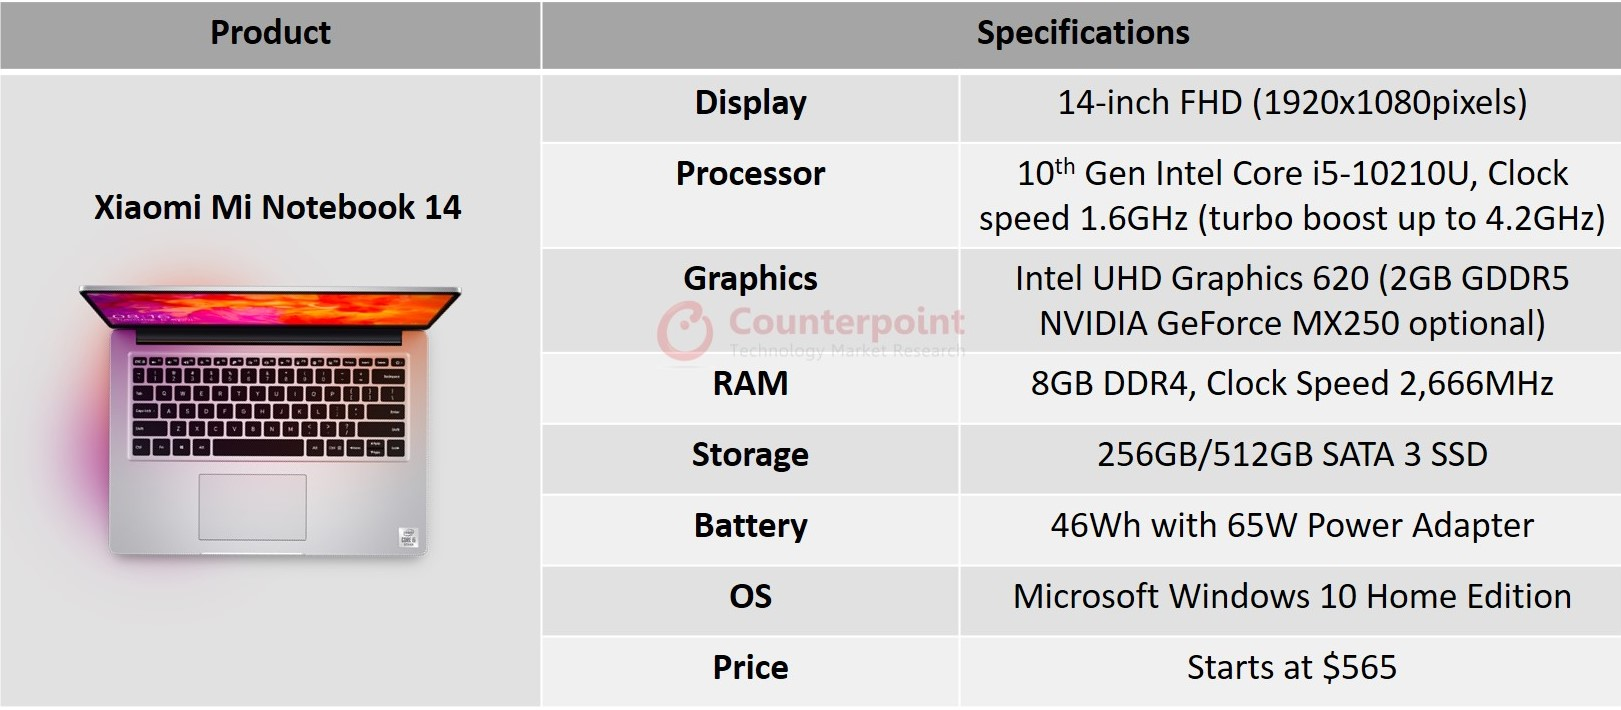 Counterpoint Xiaomi Mi Notebook 14 specifications